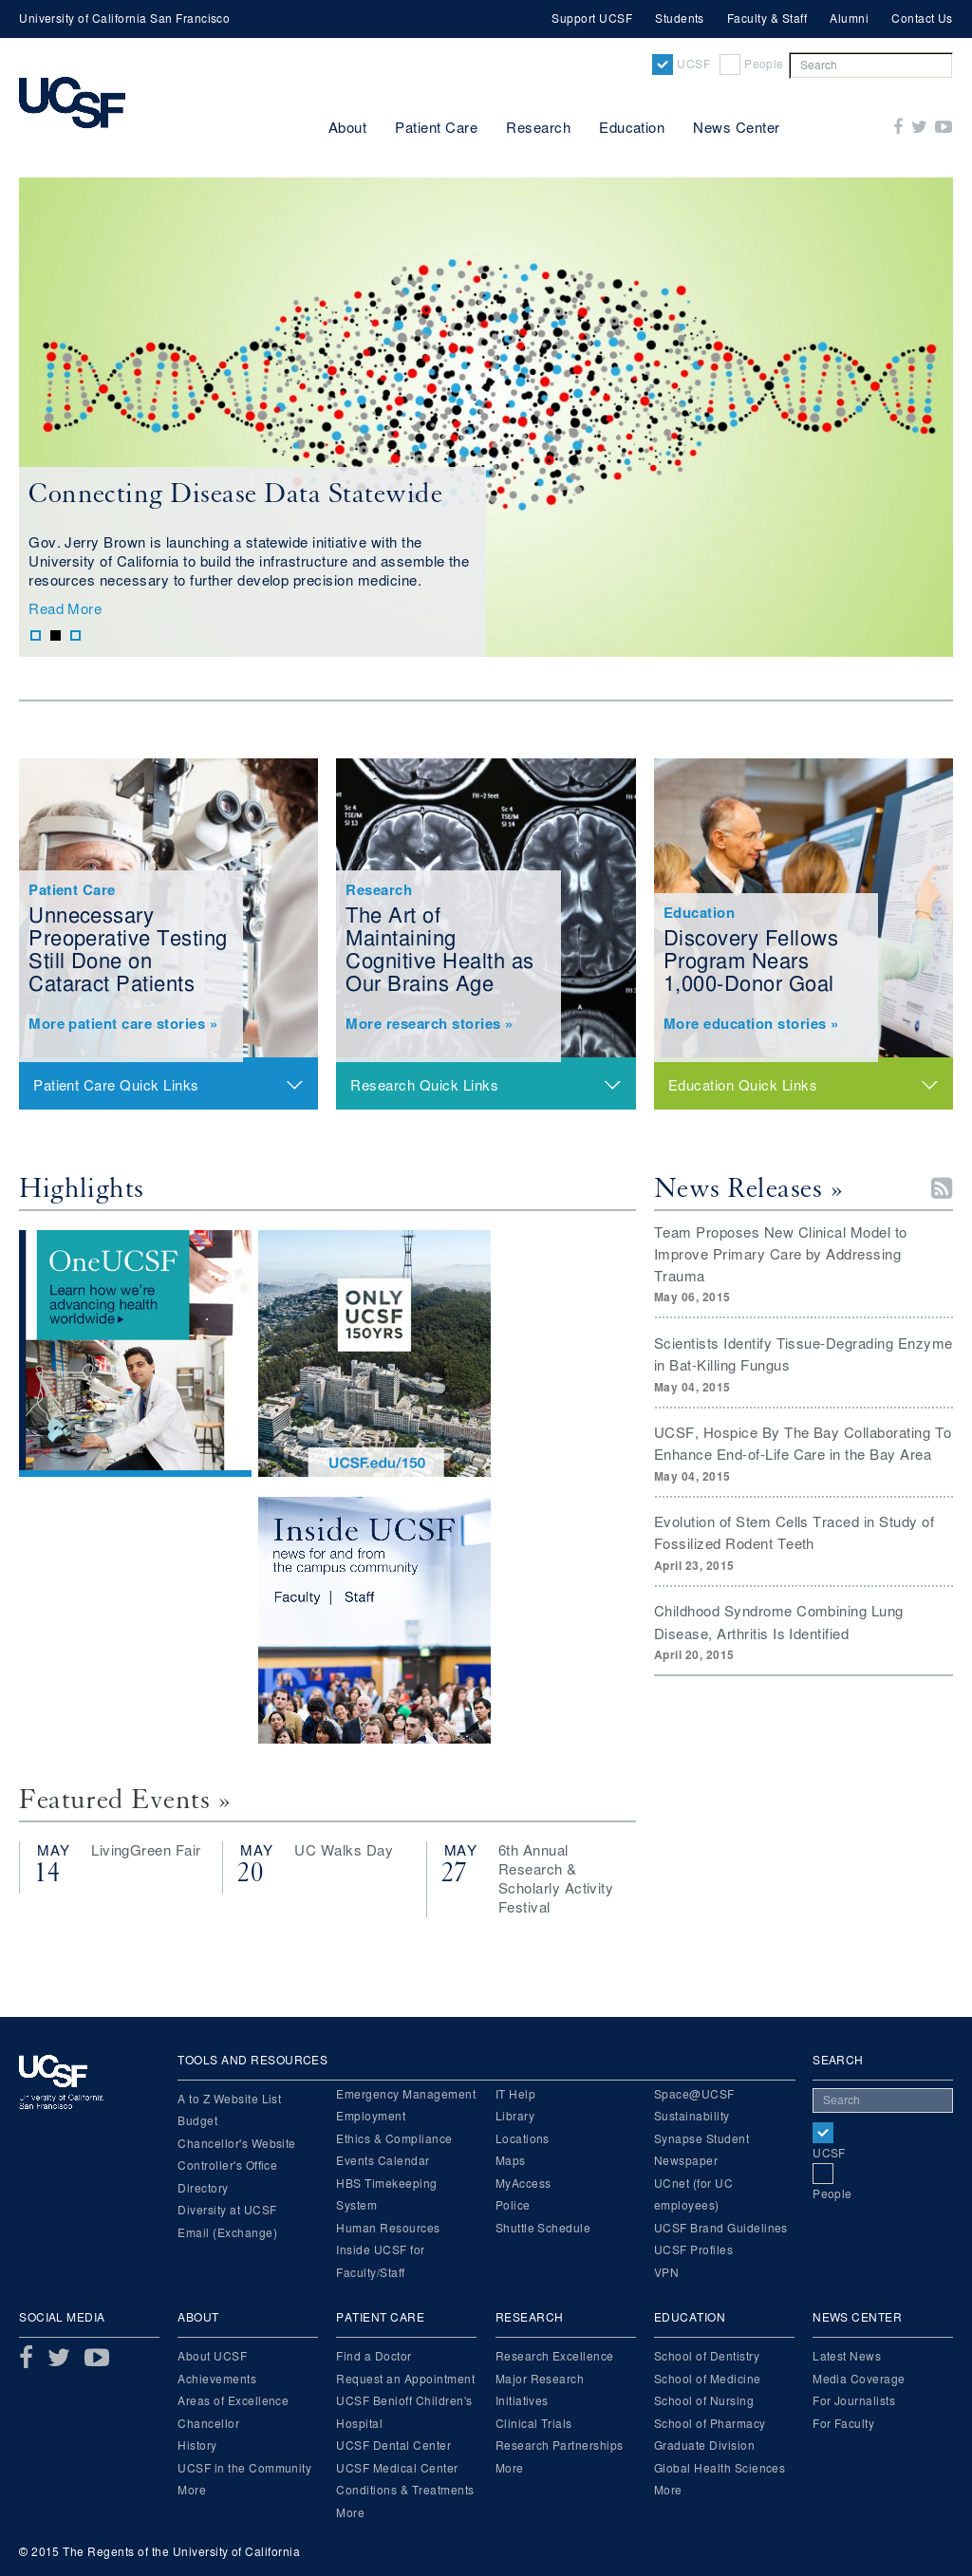 Owler Reports - Press Release: UCSF : Surgical Theater and